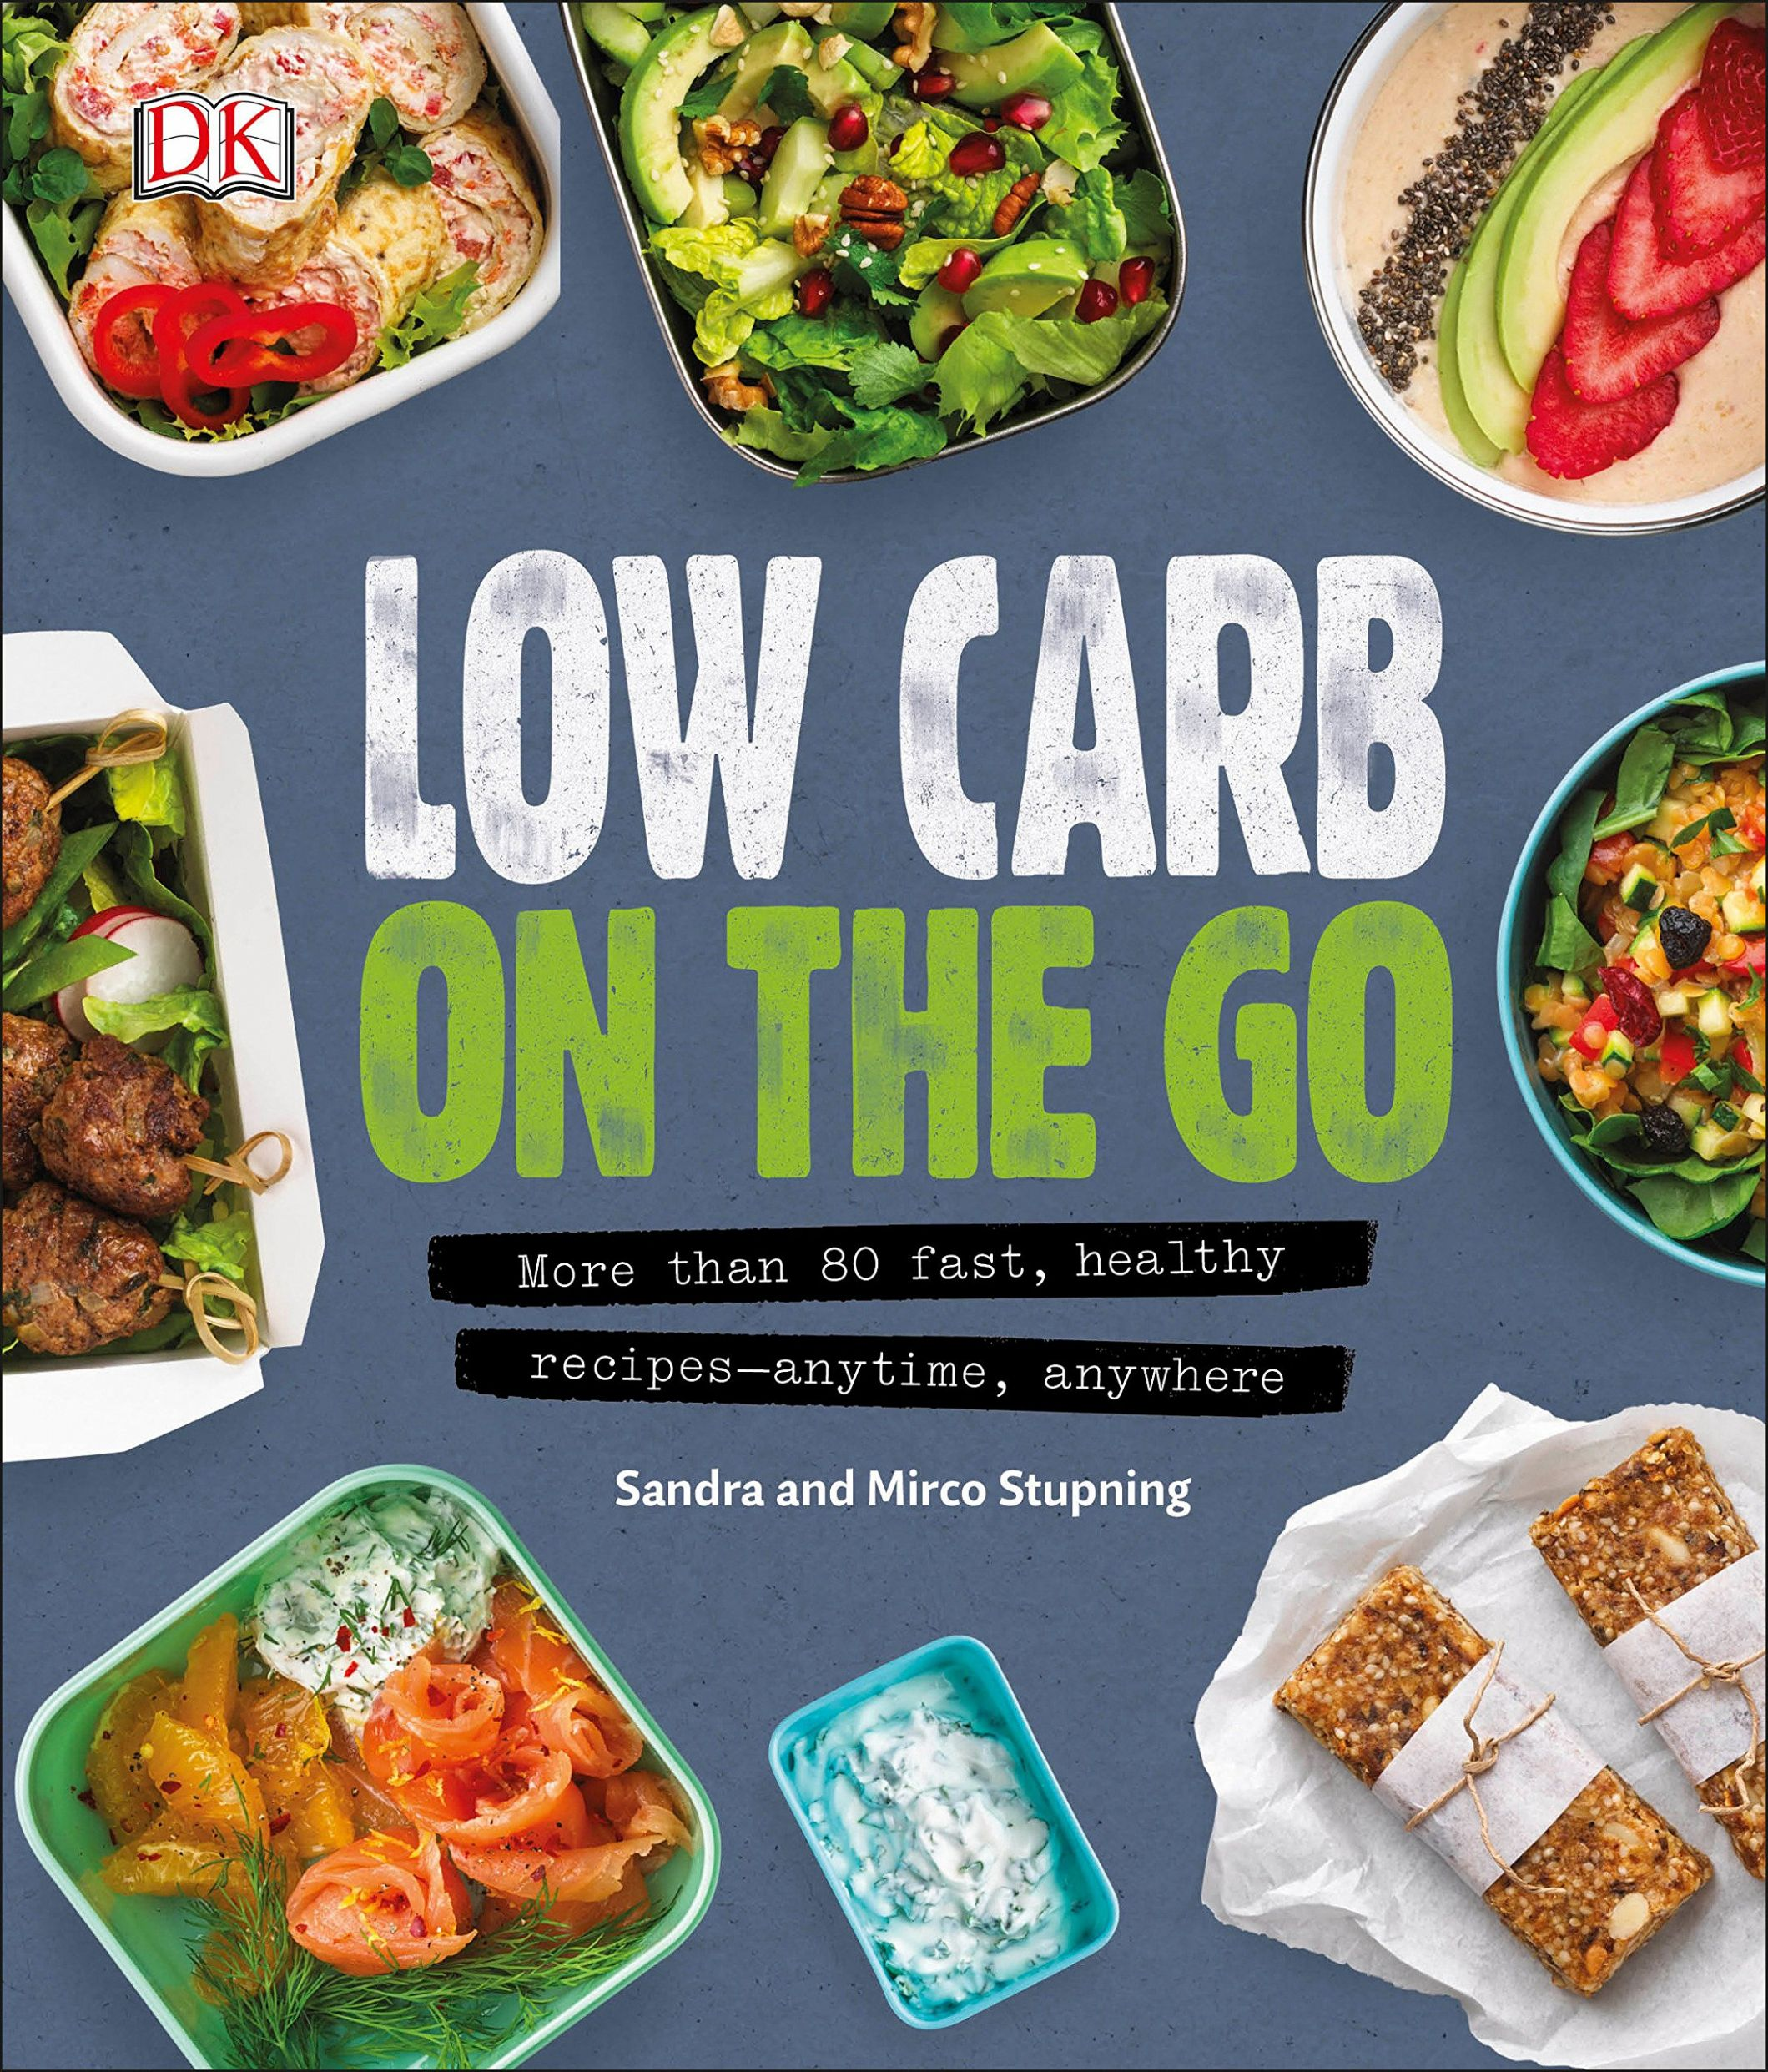 Low Carb On The Go: More Than 9 Fast, Healthy Recipes - Anytime ..